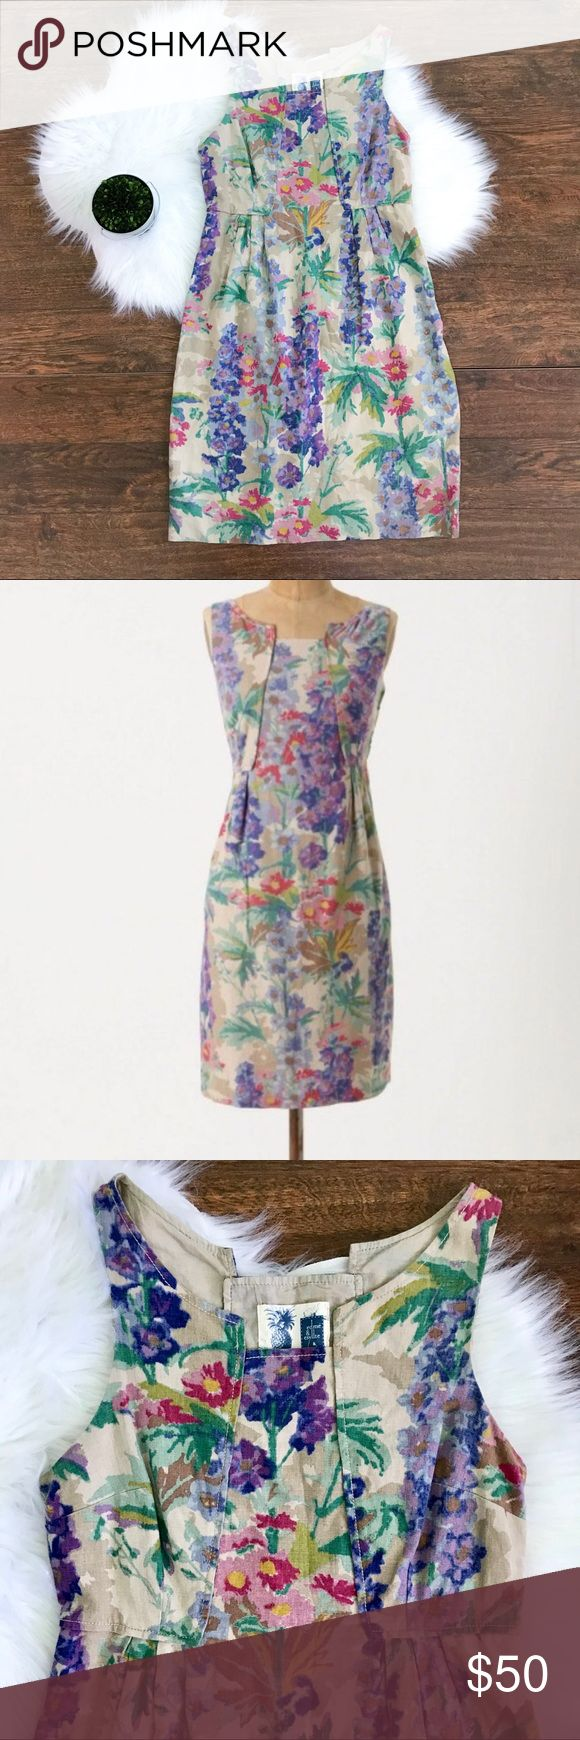 Anthropologie Edmé & Esyllte Hyacinth Afternoon Edme & esyllte hyacinth Afternoon Dress from Anthropologie. Absolutely beautiful and flattering. No flaws. GUC.  •This would be a perfect Easter dress!  •watercolor floral •linen blend •side zip •fully lined •Multi-paneled  Feel free to ask questions or make an offer! Anthropologie Dresses